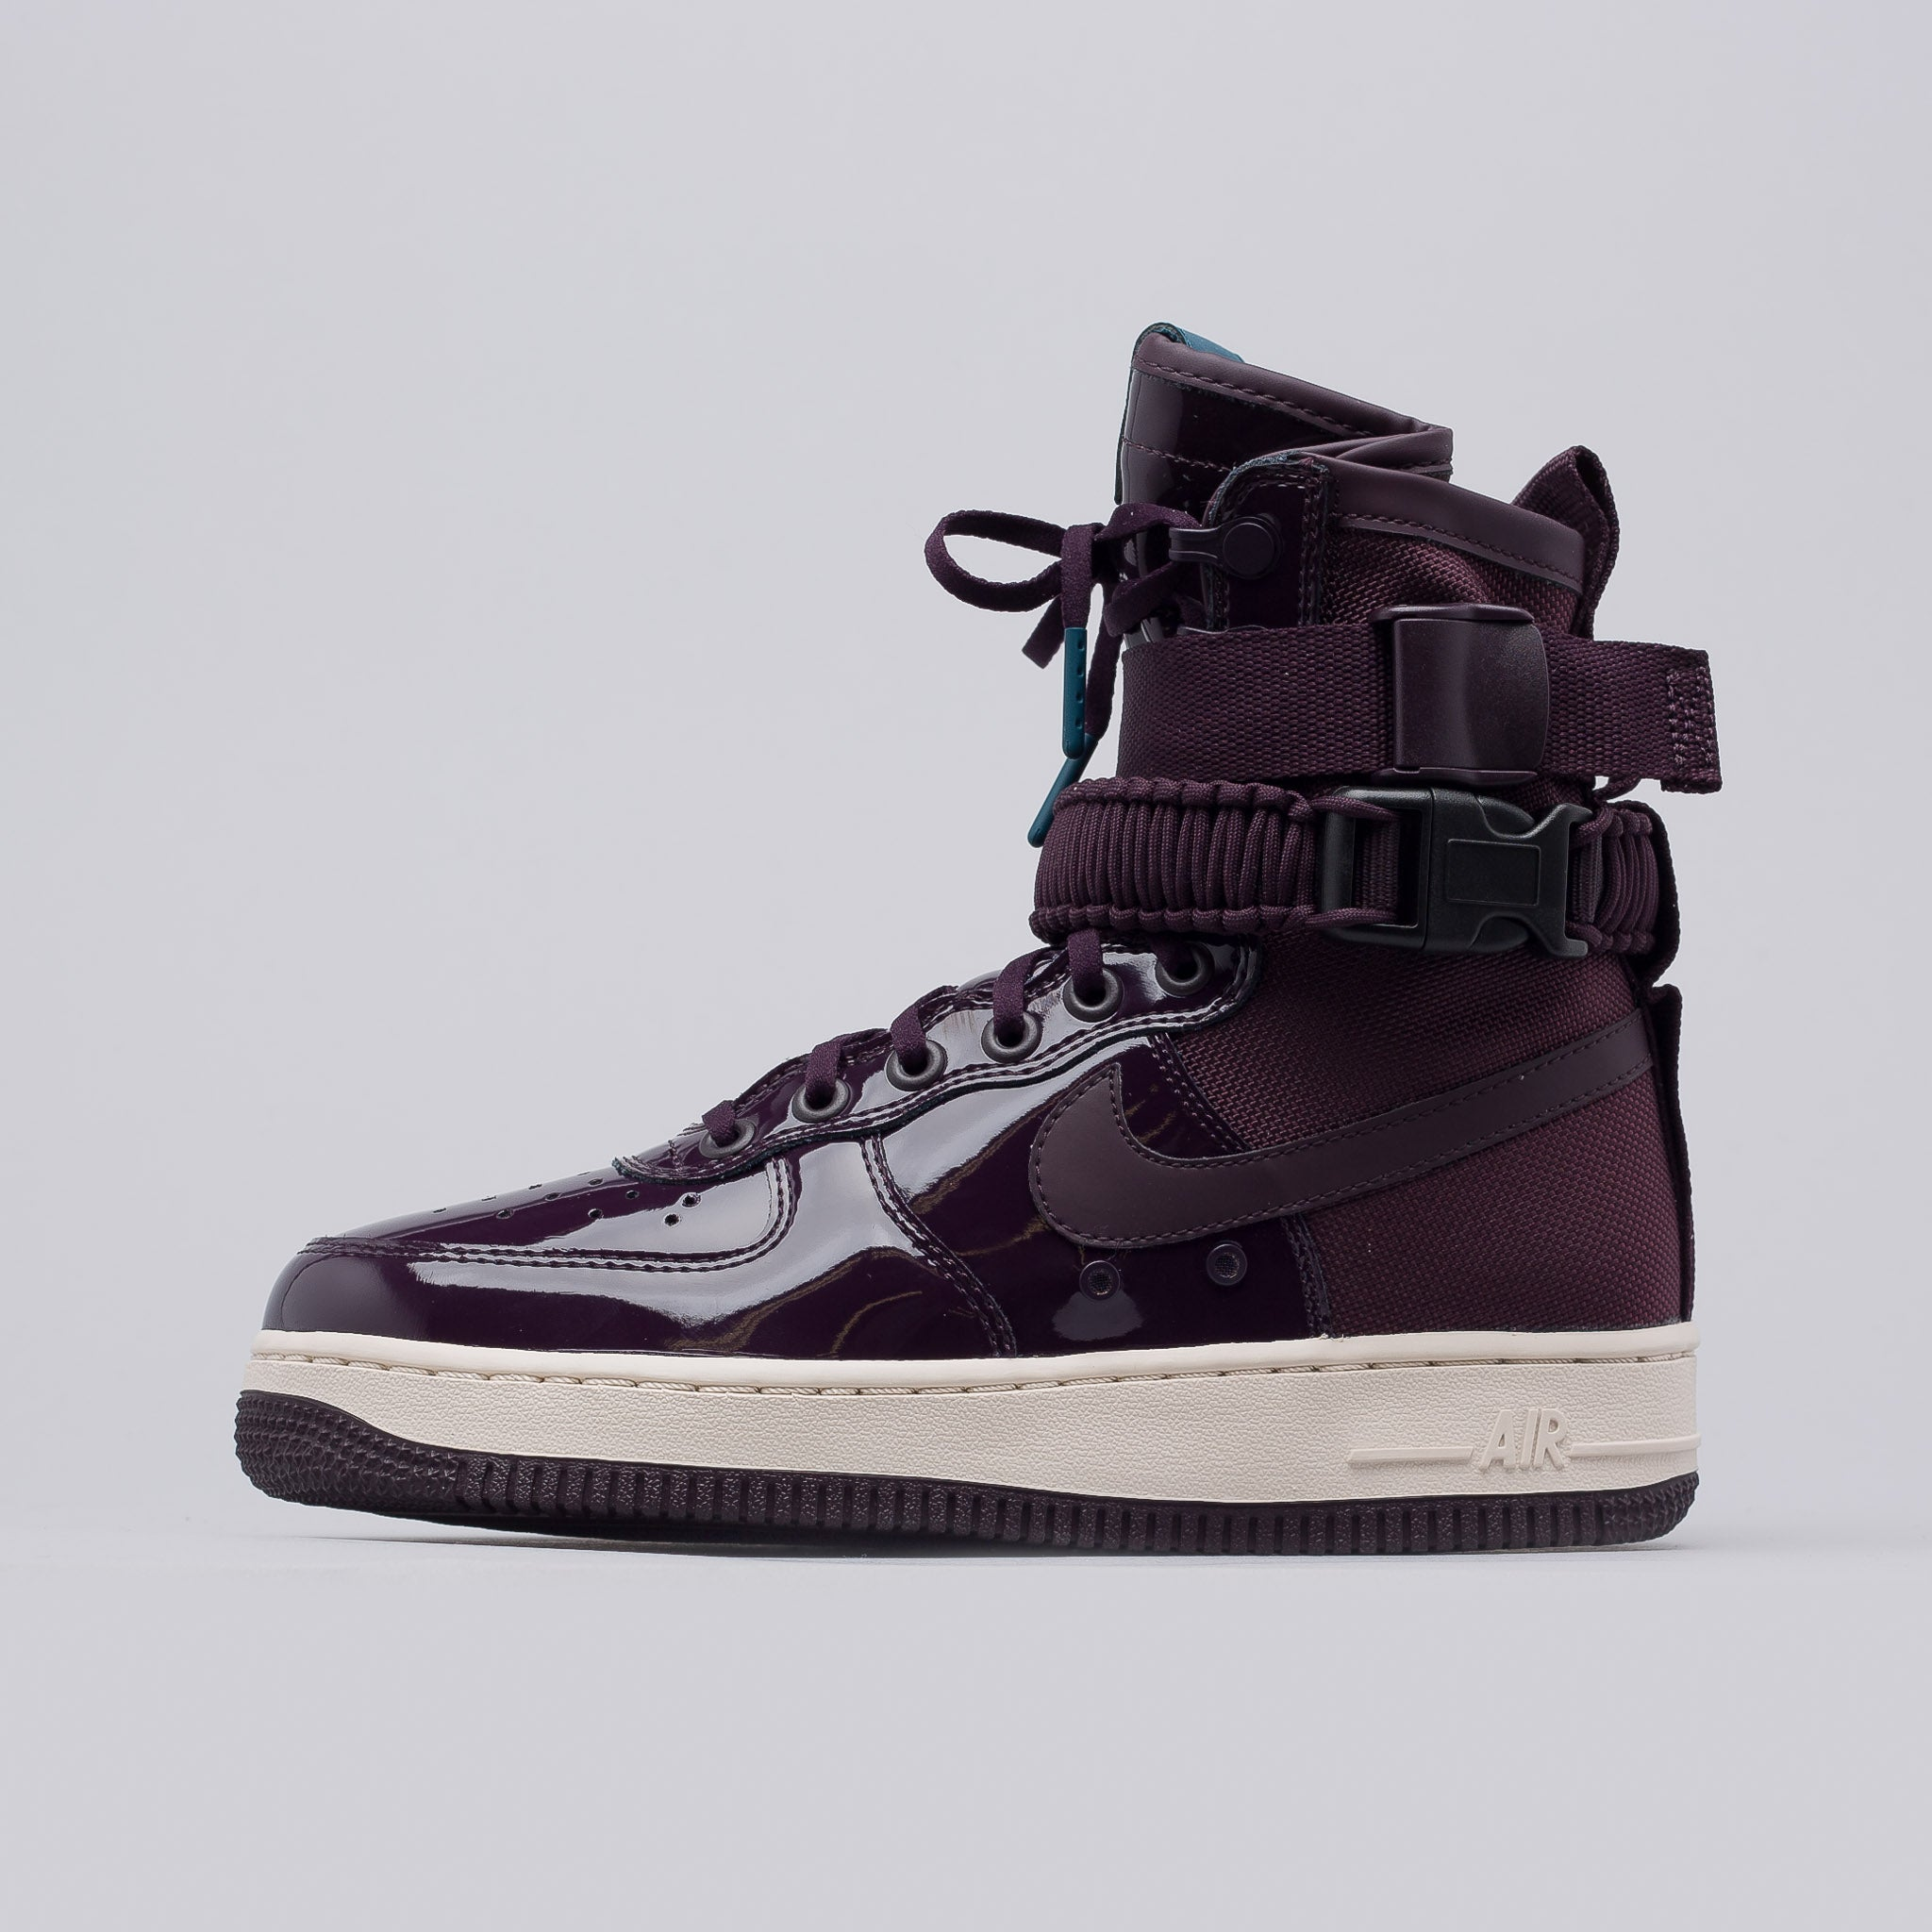 online retailer 06d3e 84041 ... Womens Nike Air Force 1 Boots WNS 6 Inch Grey Brown Womens Special  Field Air Force ...